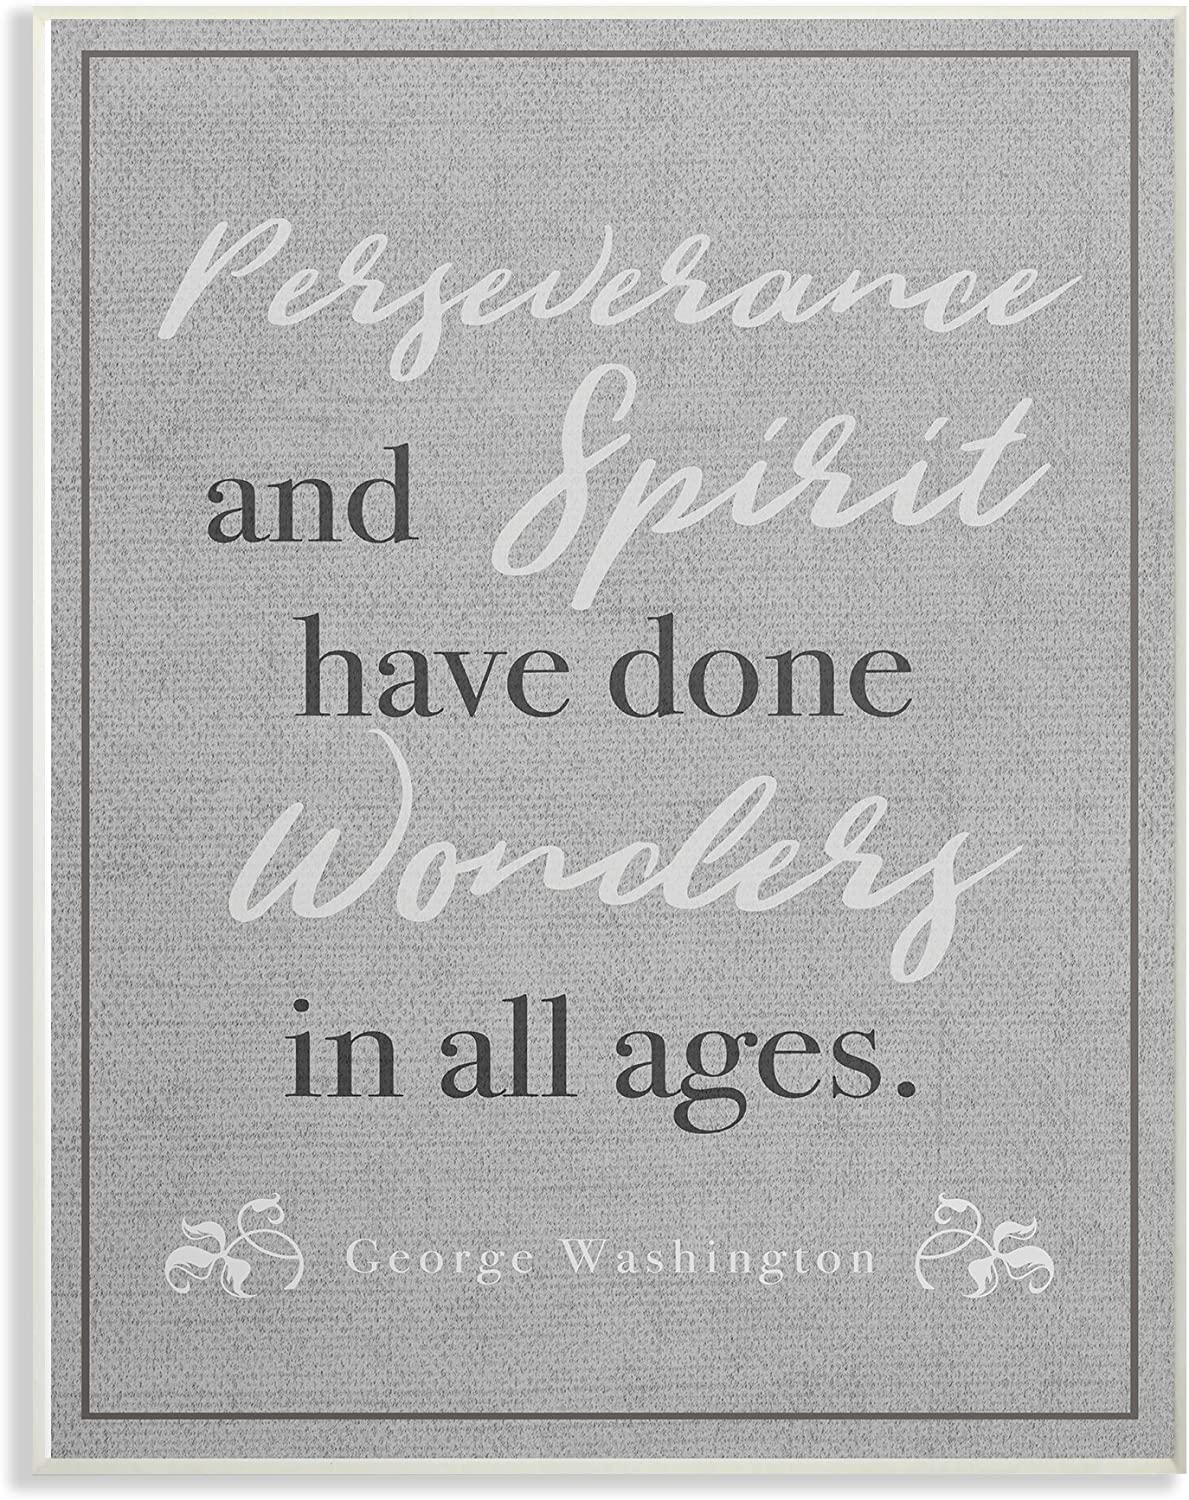 The Stupell Home Decor Collection Perseverance and Spirit Oversized Wall Plaque Art, 12.5 x 0.5 x 18.5, Proudly Made in USA